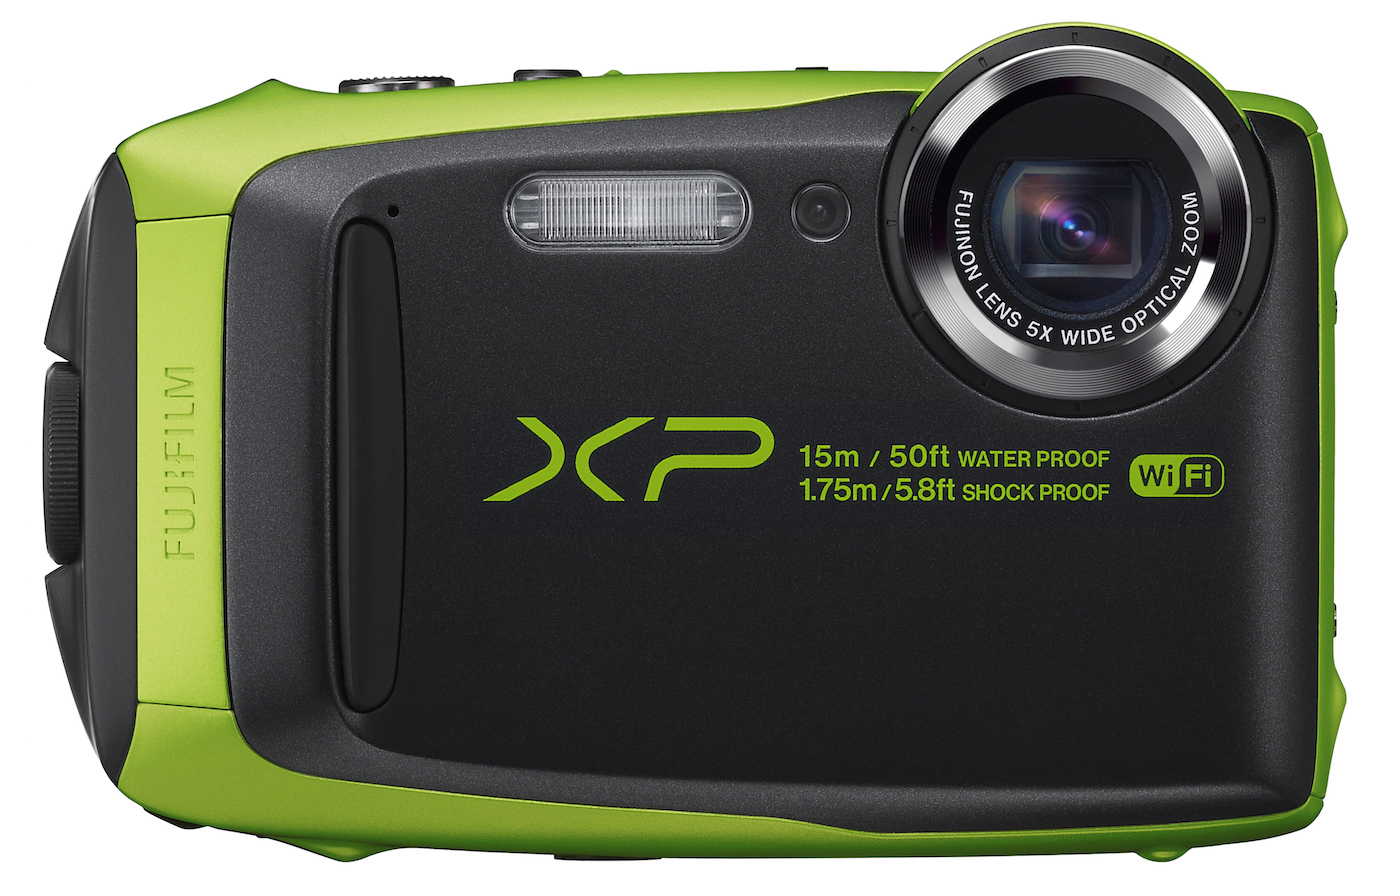 Fujifilm reveals the FinePix XP90, a durable point-and-shoot